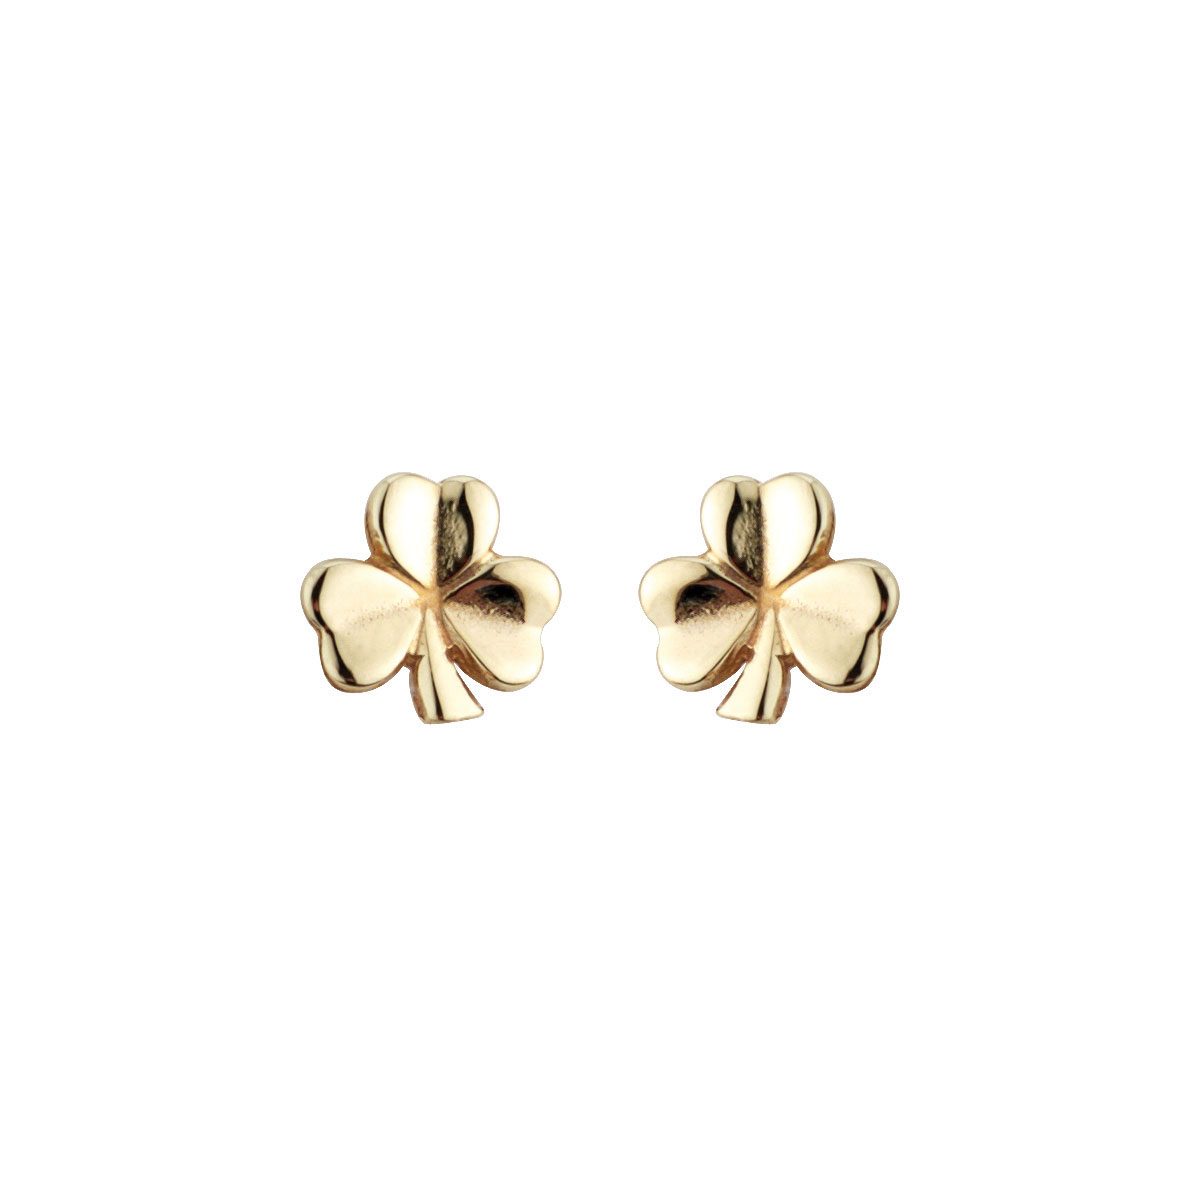 Cashs Ireland, 18K Gold-Plated Shamrock Pierced Earrings Pair